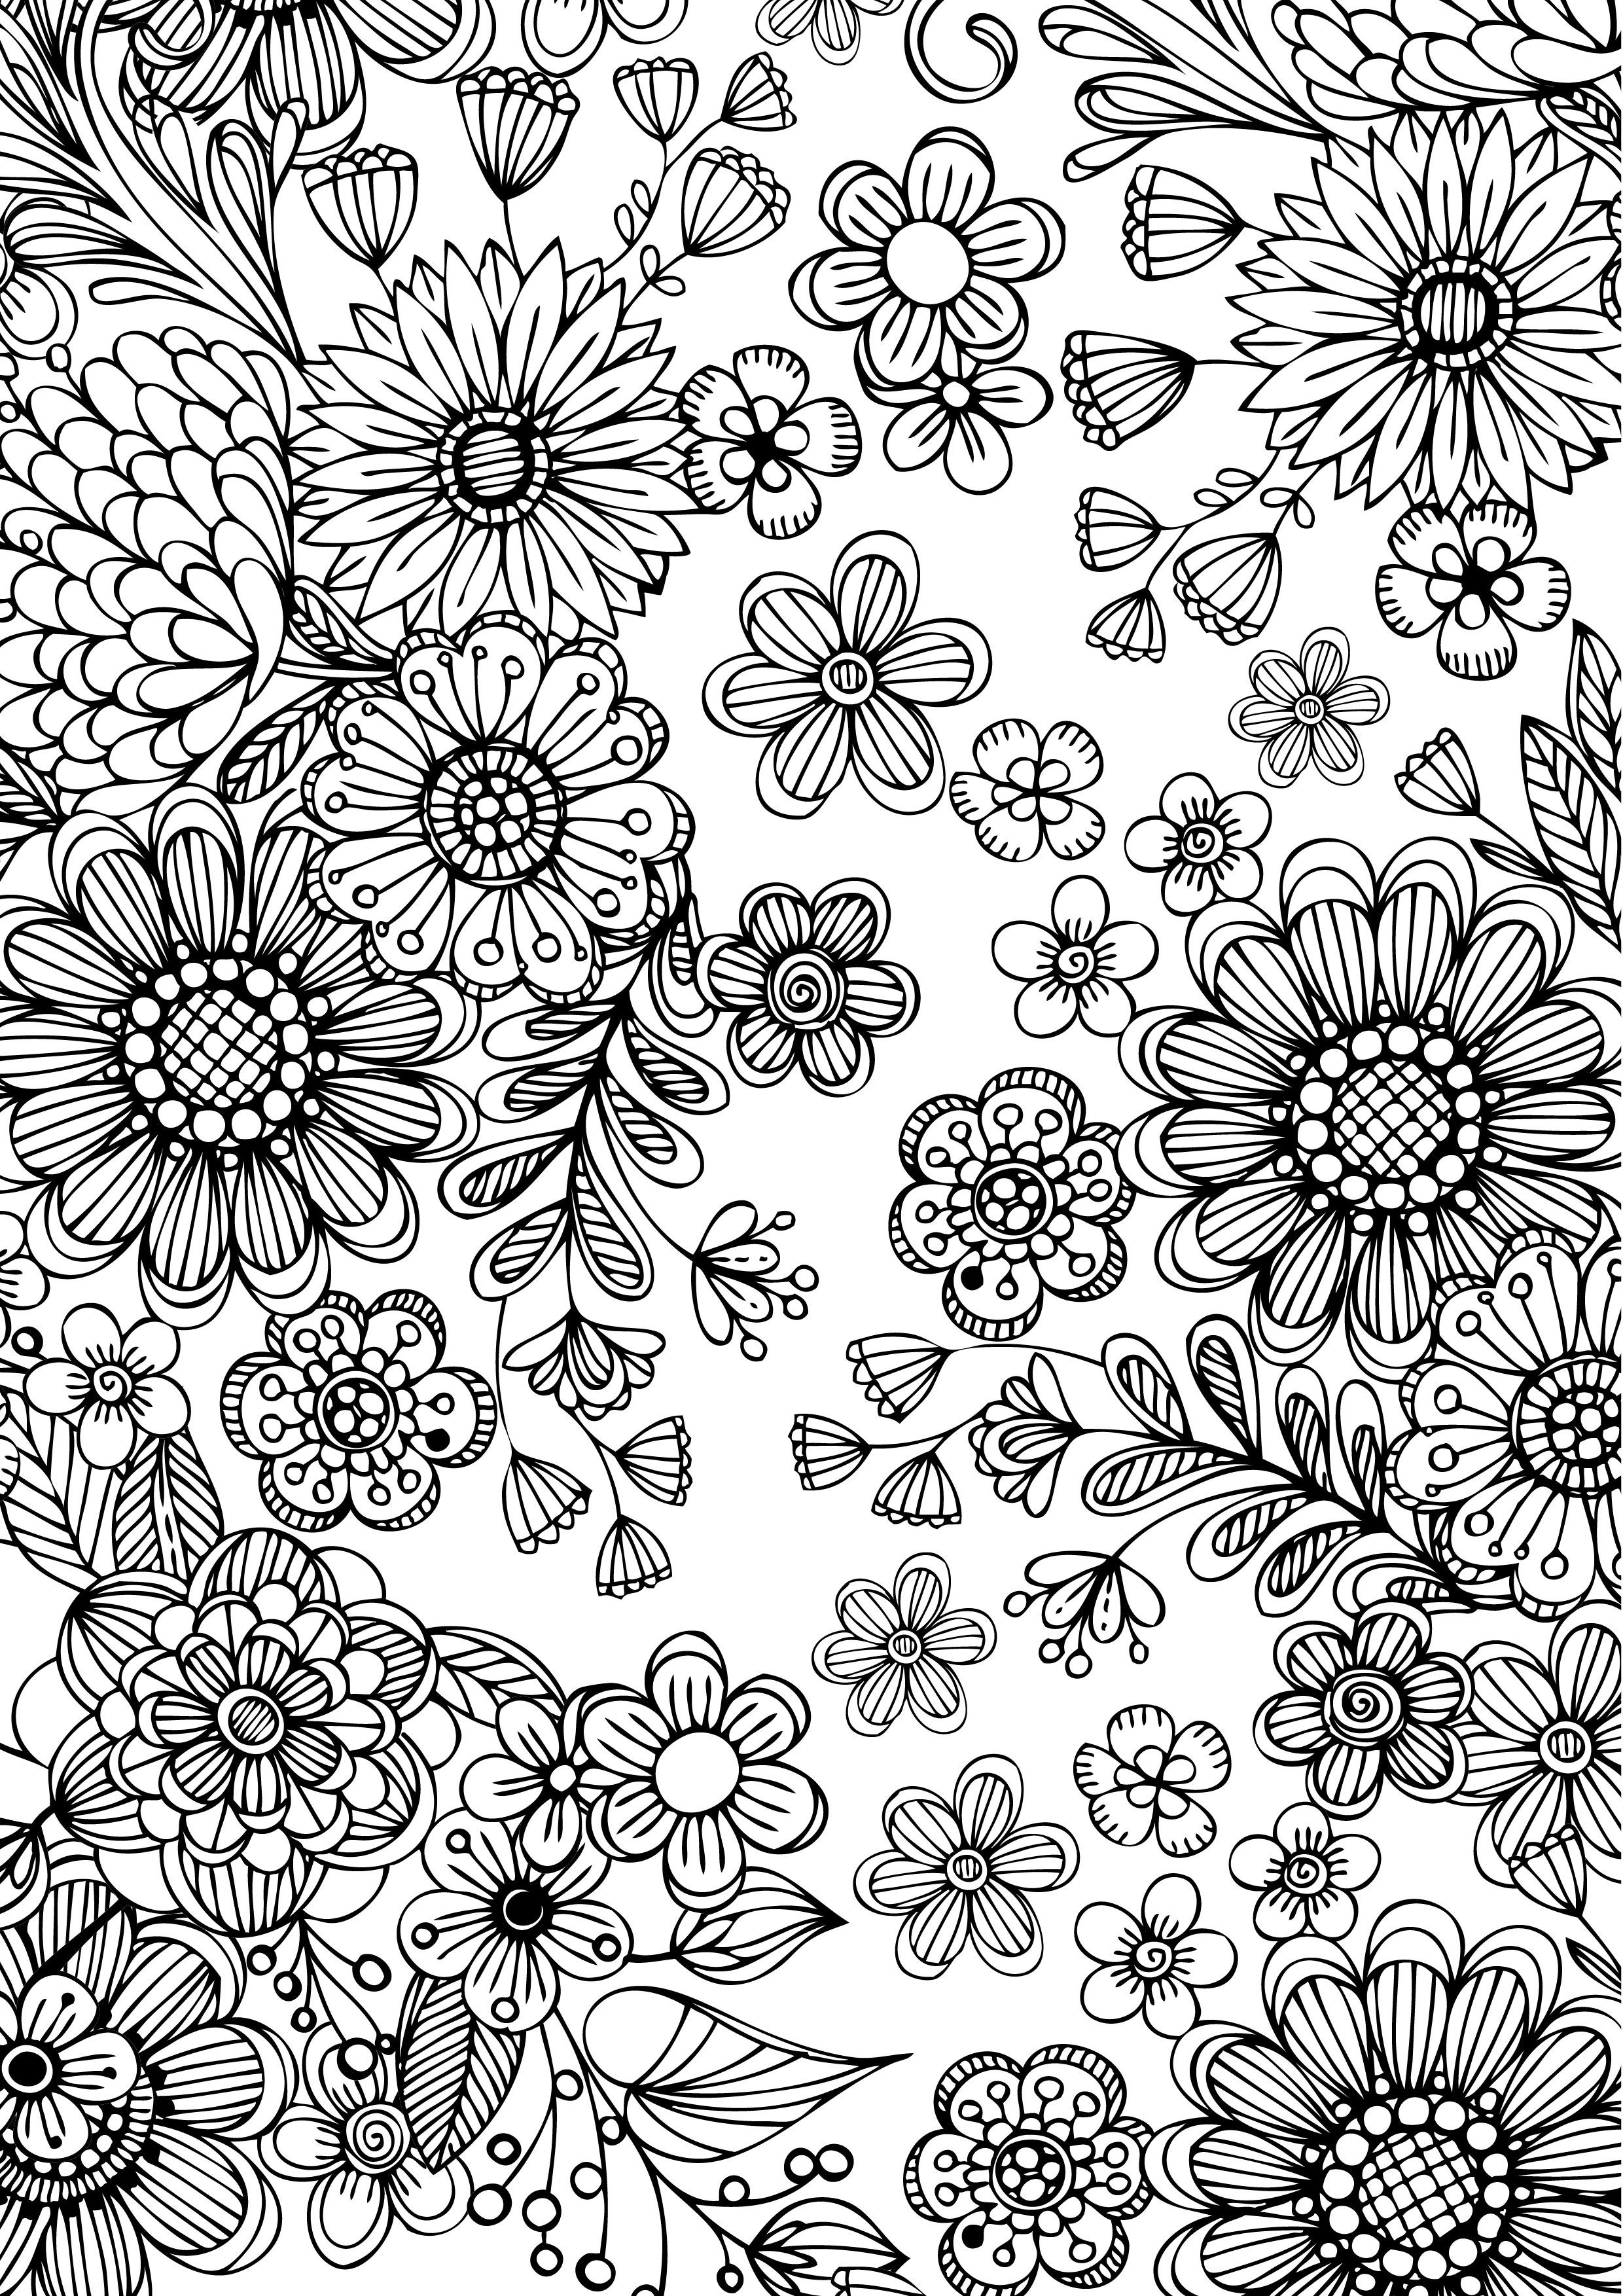 Free coloring plate adult with spectrum noir | Coloring pages ...